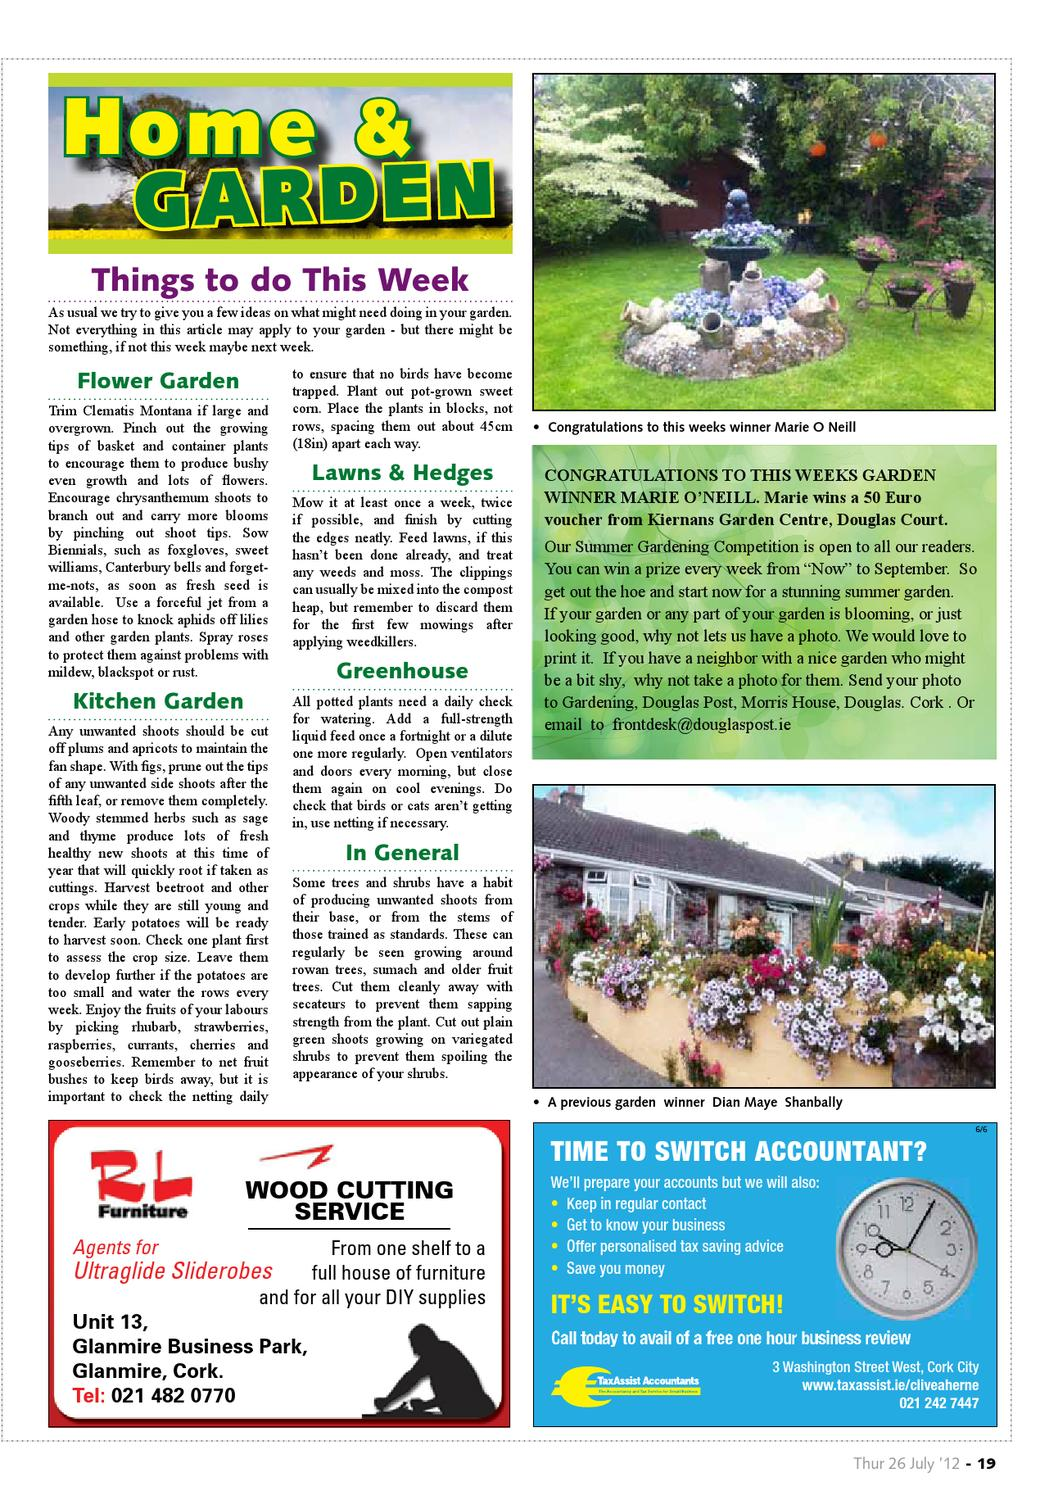 Page 19 of magazine